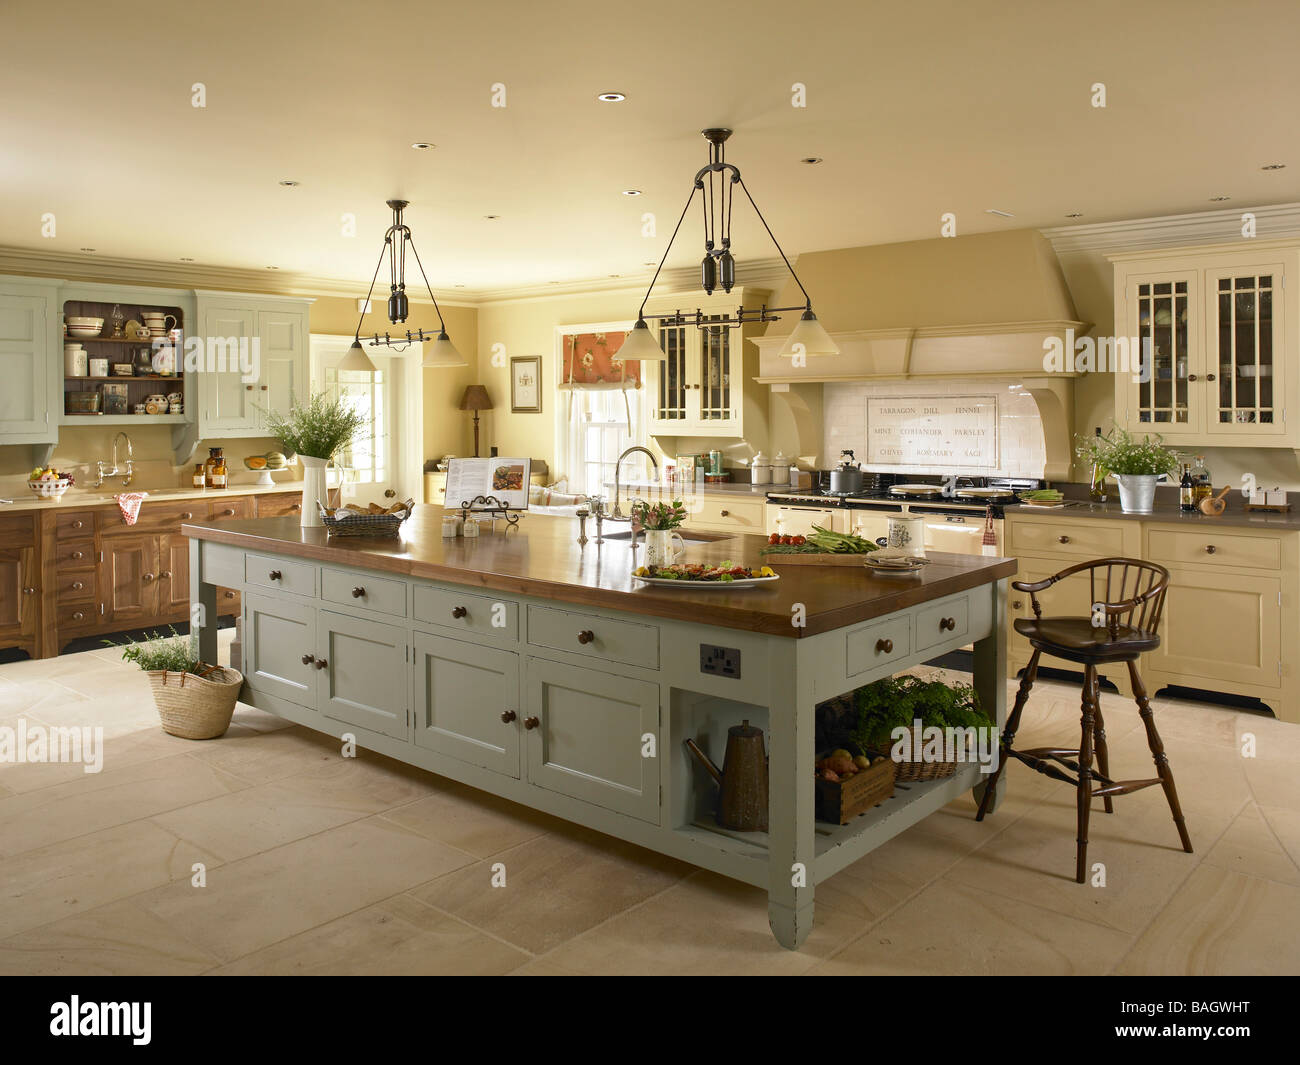 A large kitchen island unit Stock Photo: 23728260 - Alamy